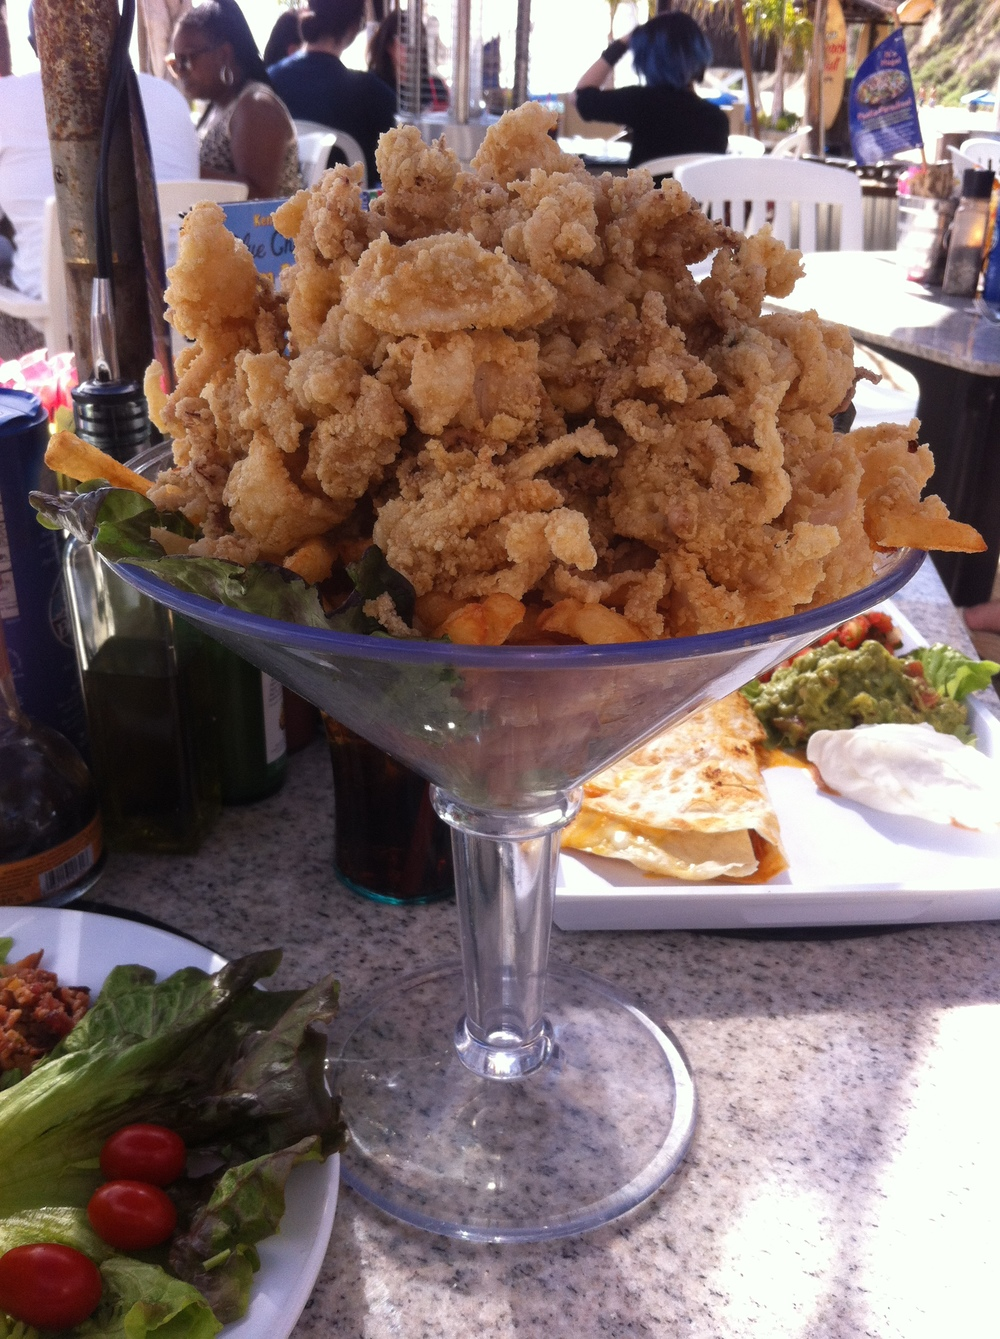 A starter of Calamari at the Paradise Cove Café. Check out the size of this!!!!!